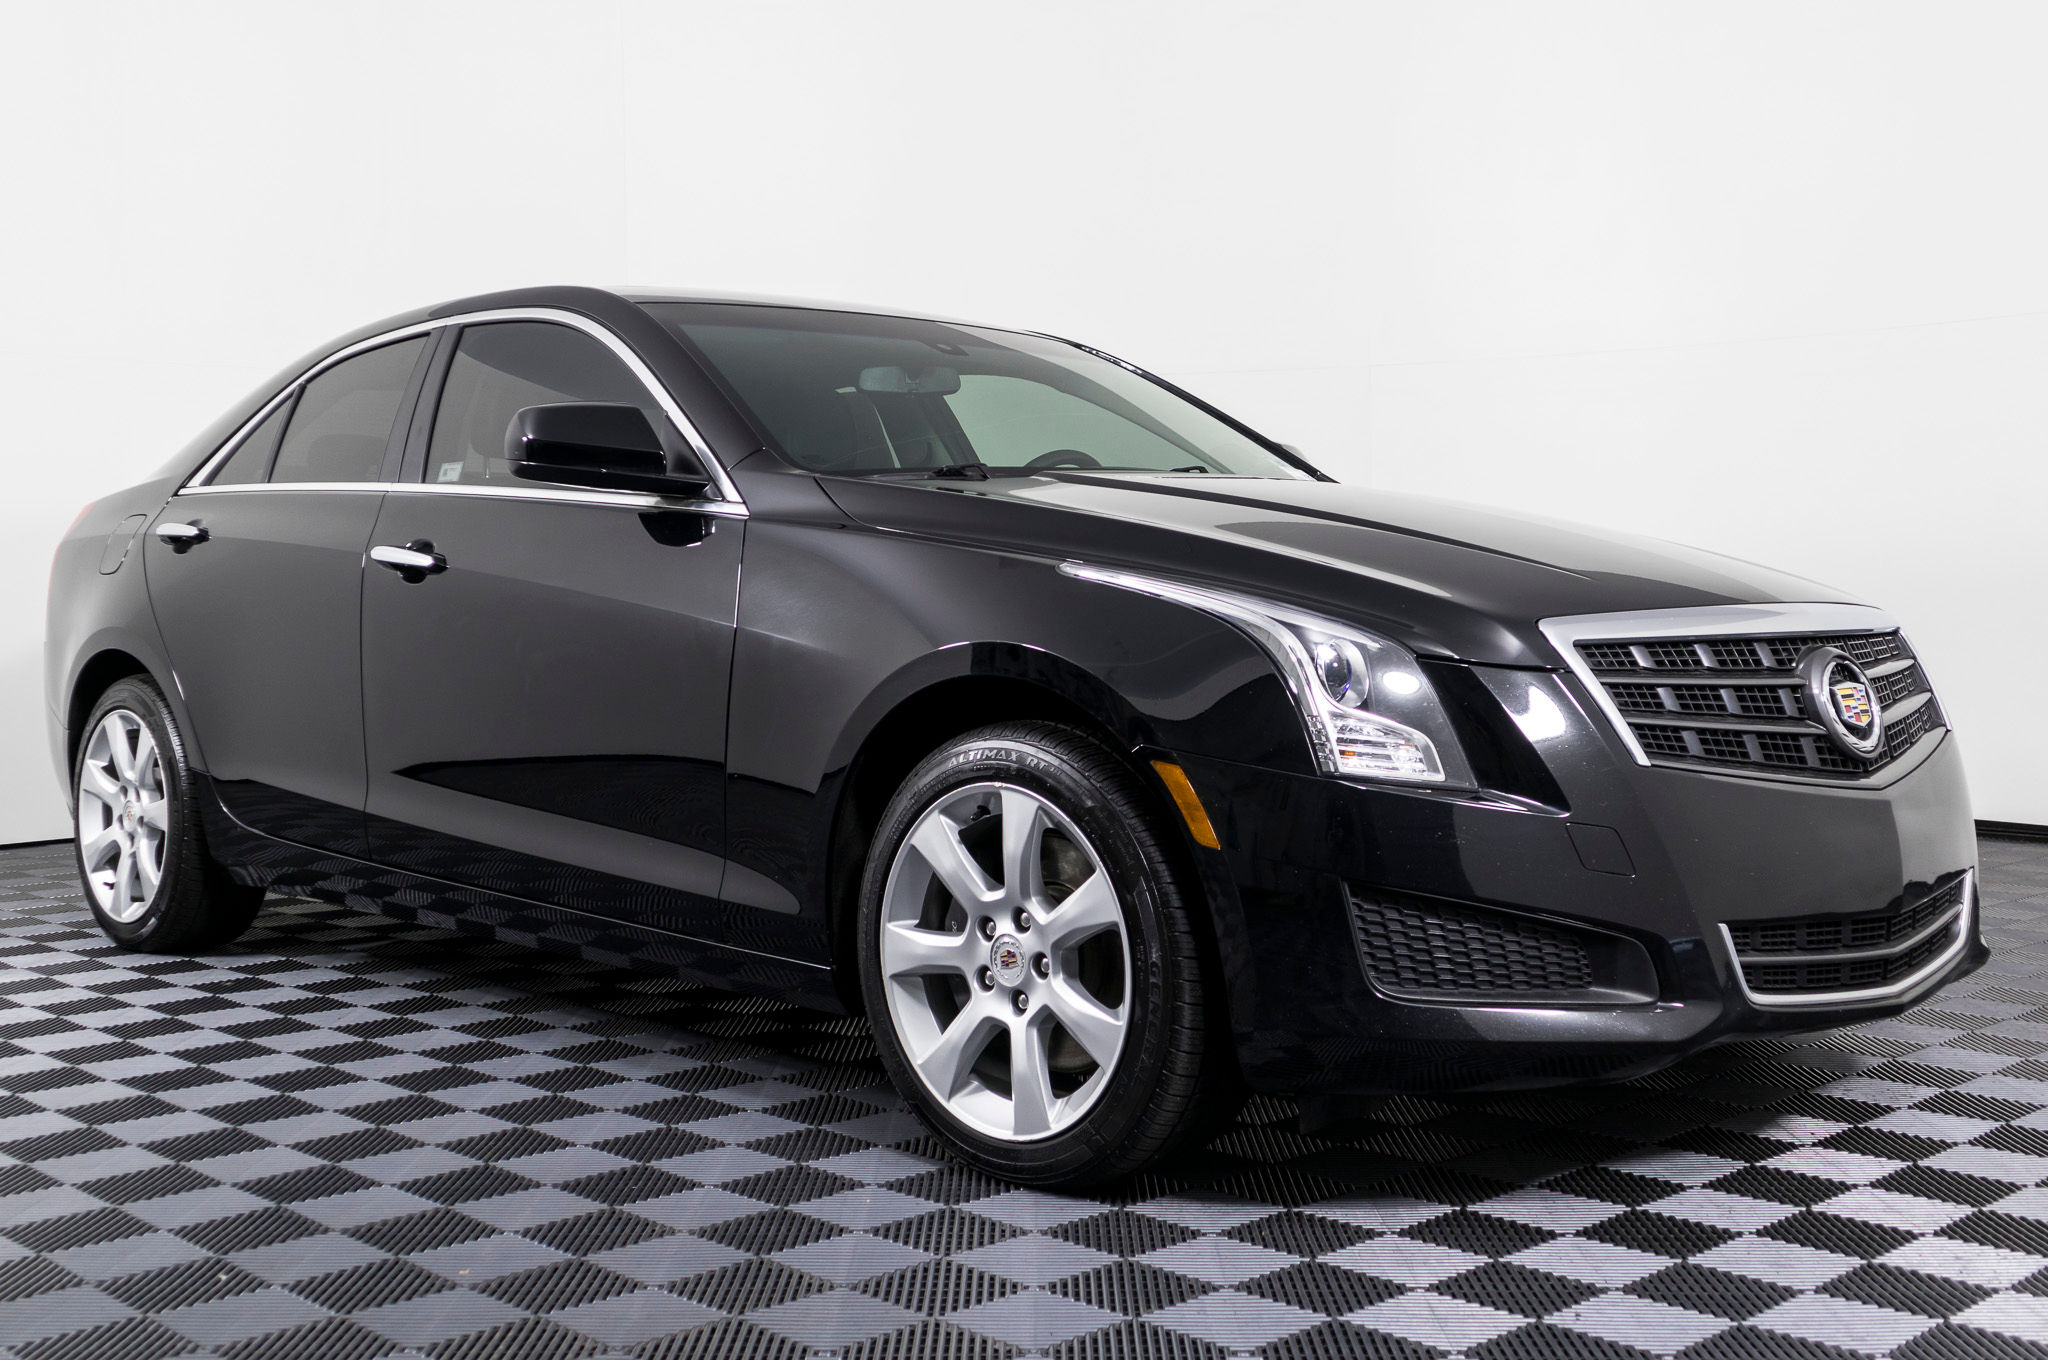 competition cadillac the news well stacks h up mph in seconds ats against